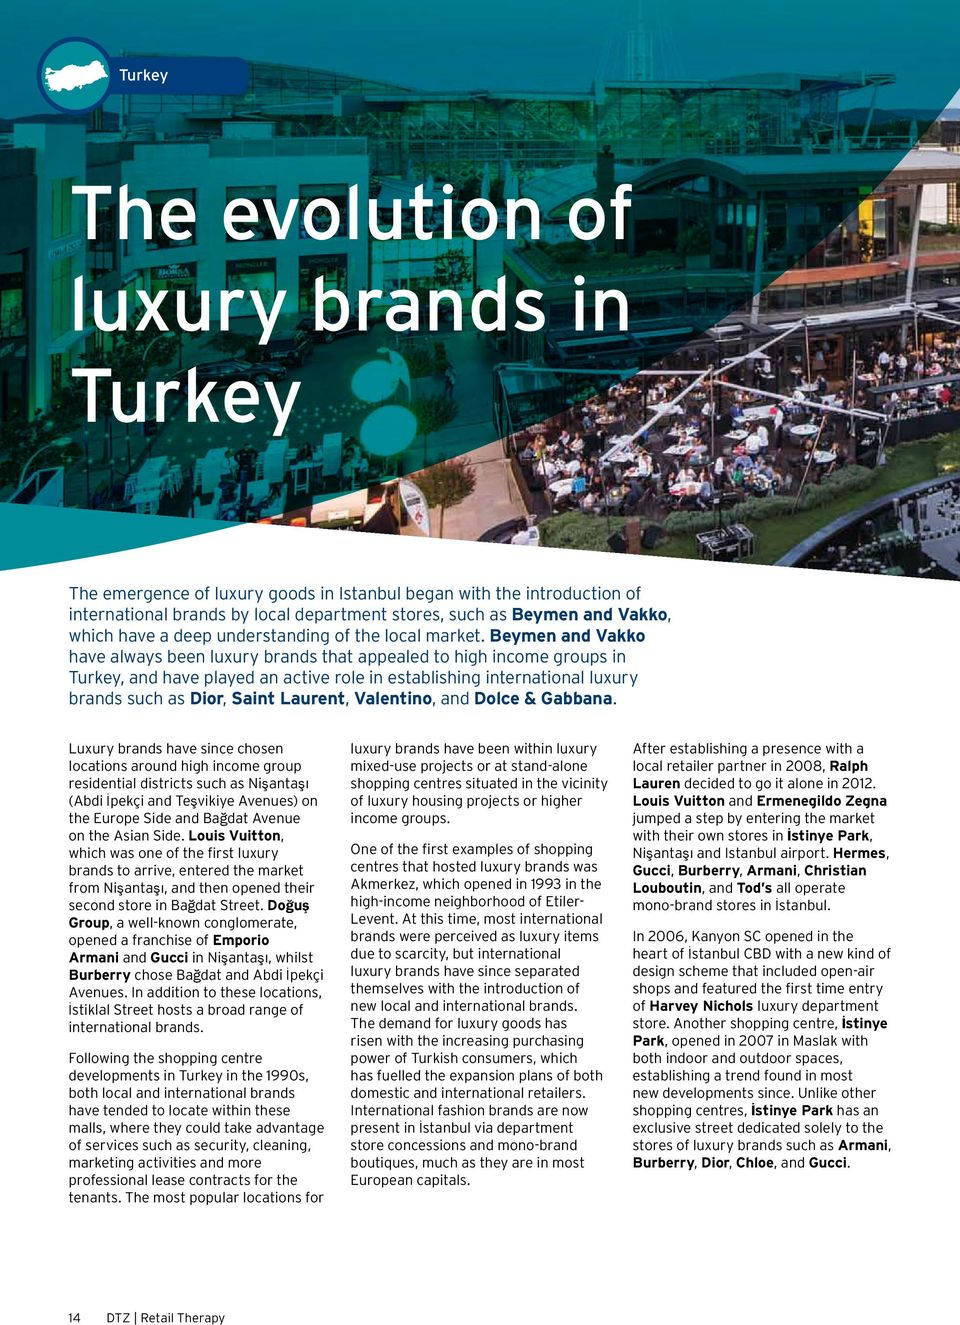 Beymen and Vakko have always been luxury brands that appealed to high income groups in Turkey, and have played an active role in establishing international luxury brands such as Dior, Saint Laurent,